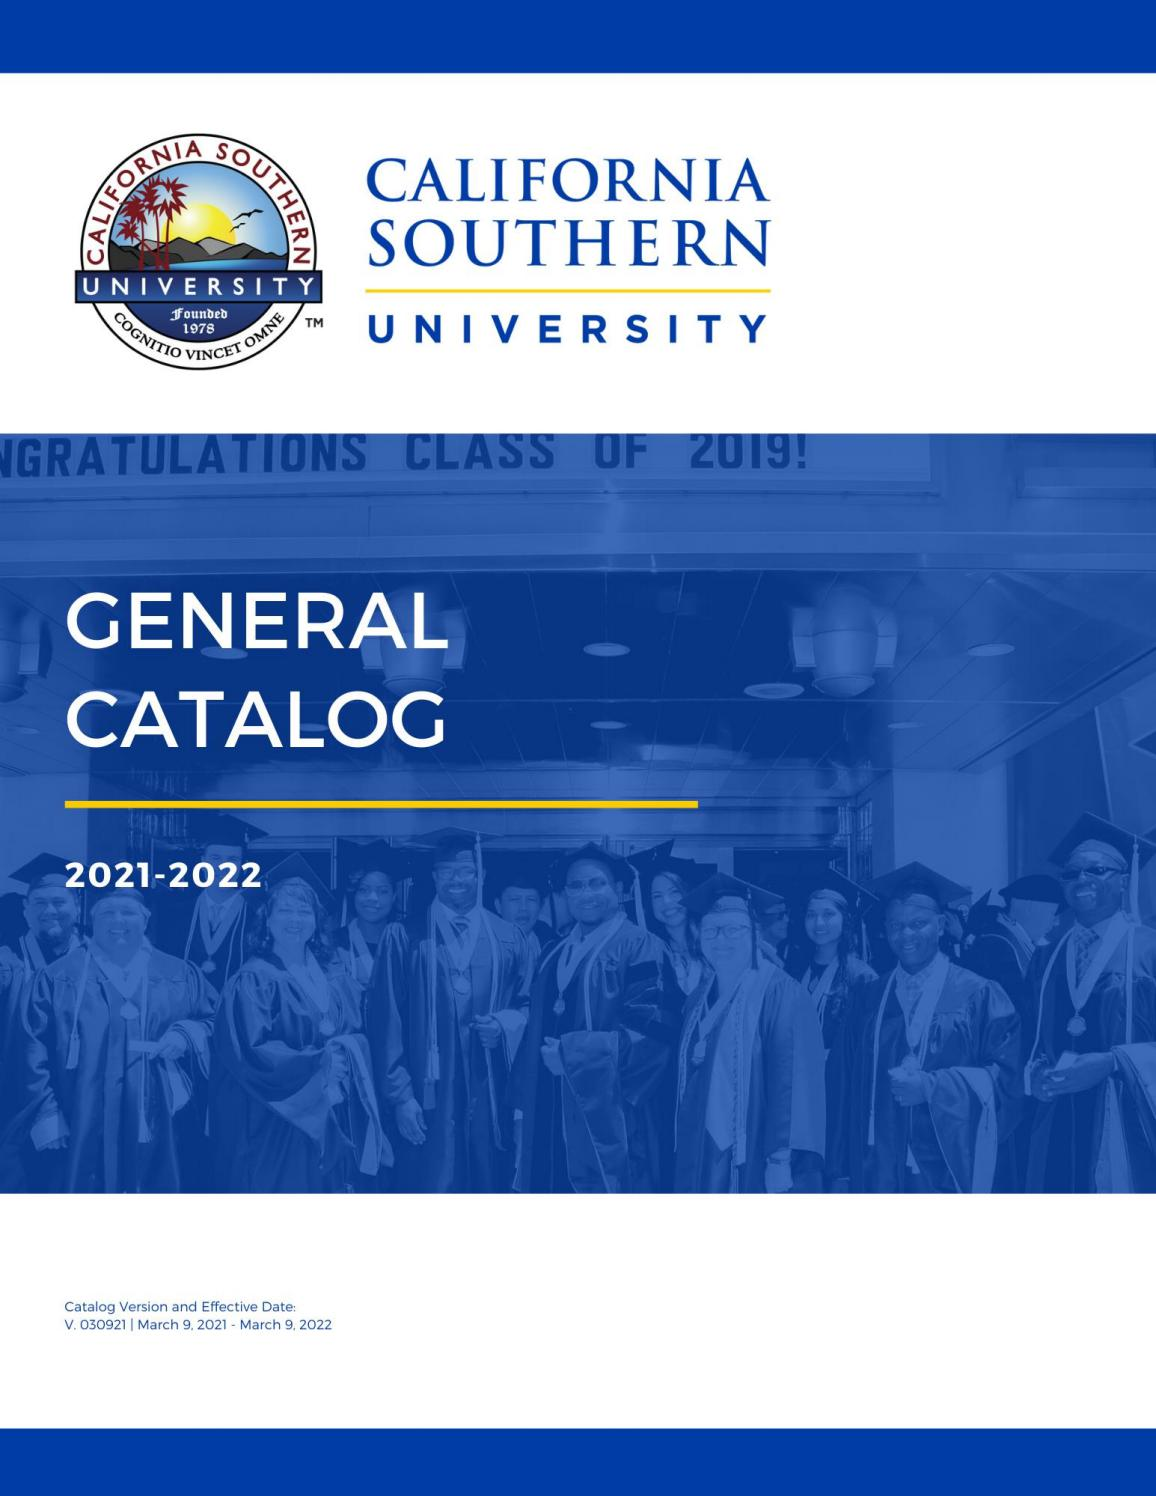 Uofl Academic Calendar 2022.Calsouthern Catalog 2021 2022 By California Southern University Issuu